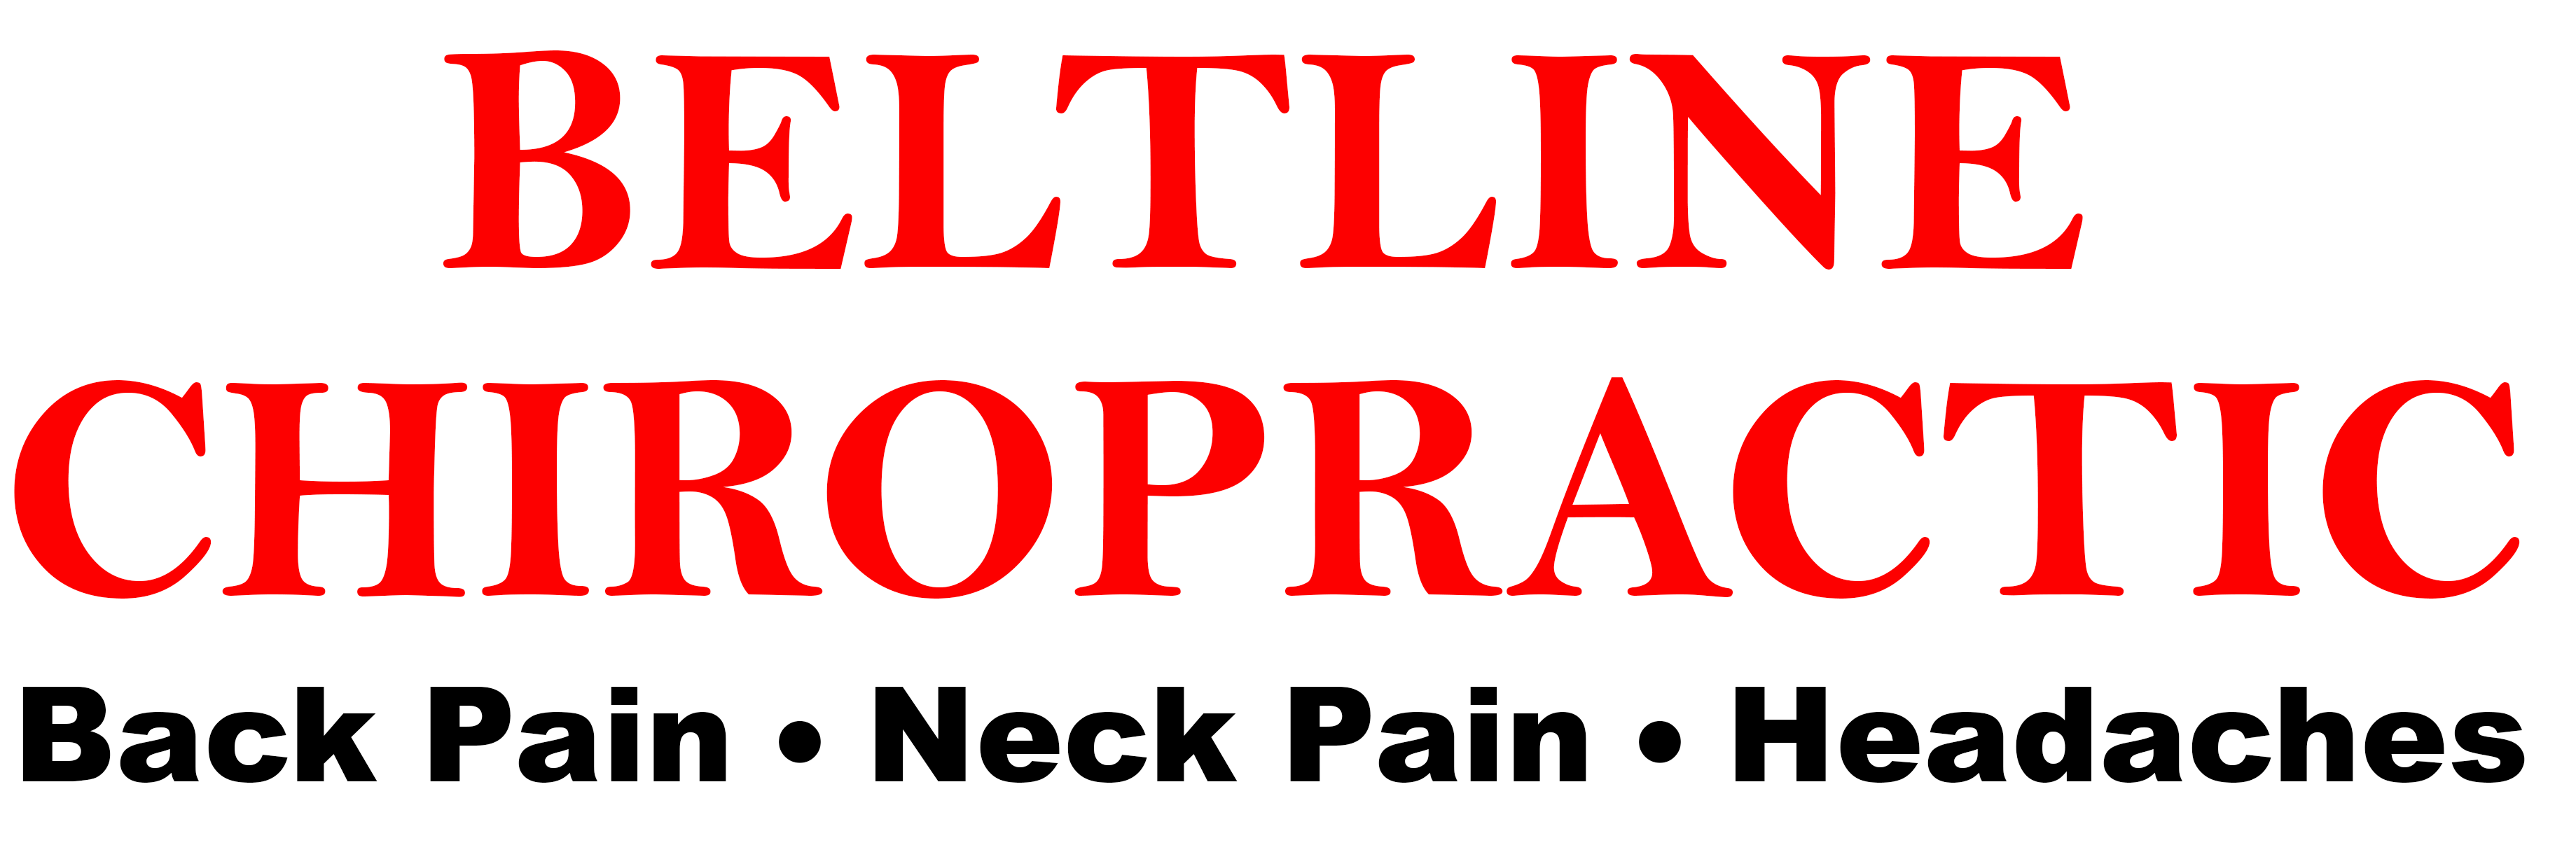 Beltline Chiropractic Provides Back, Neck & Headache Pain Relief in Collinsville IL